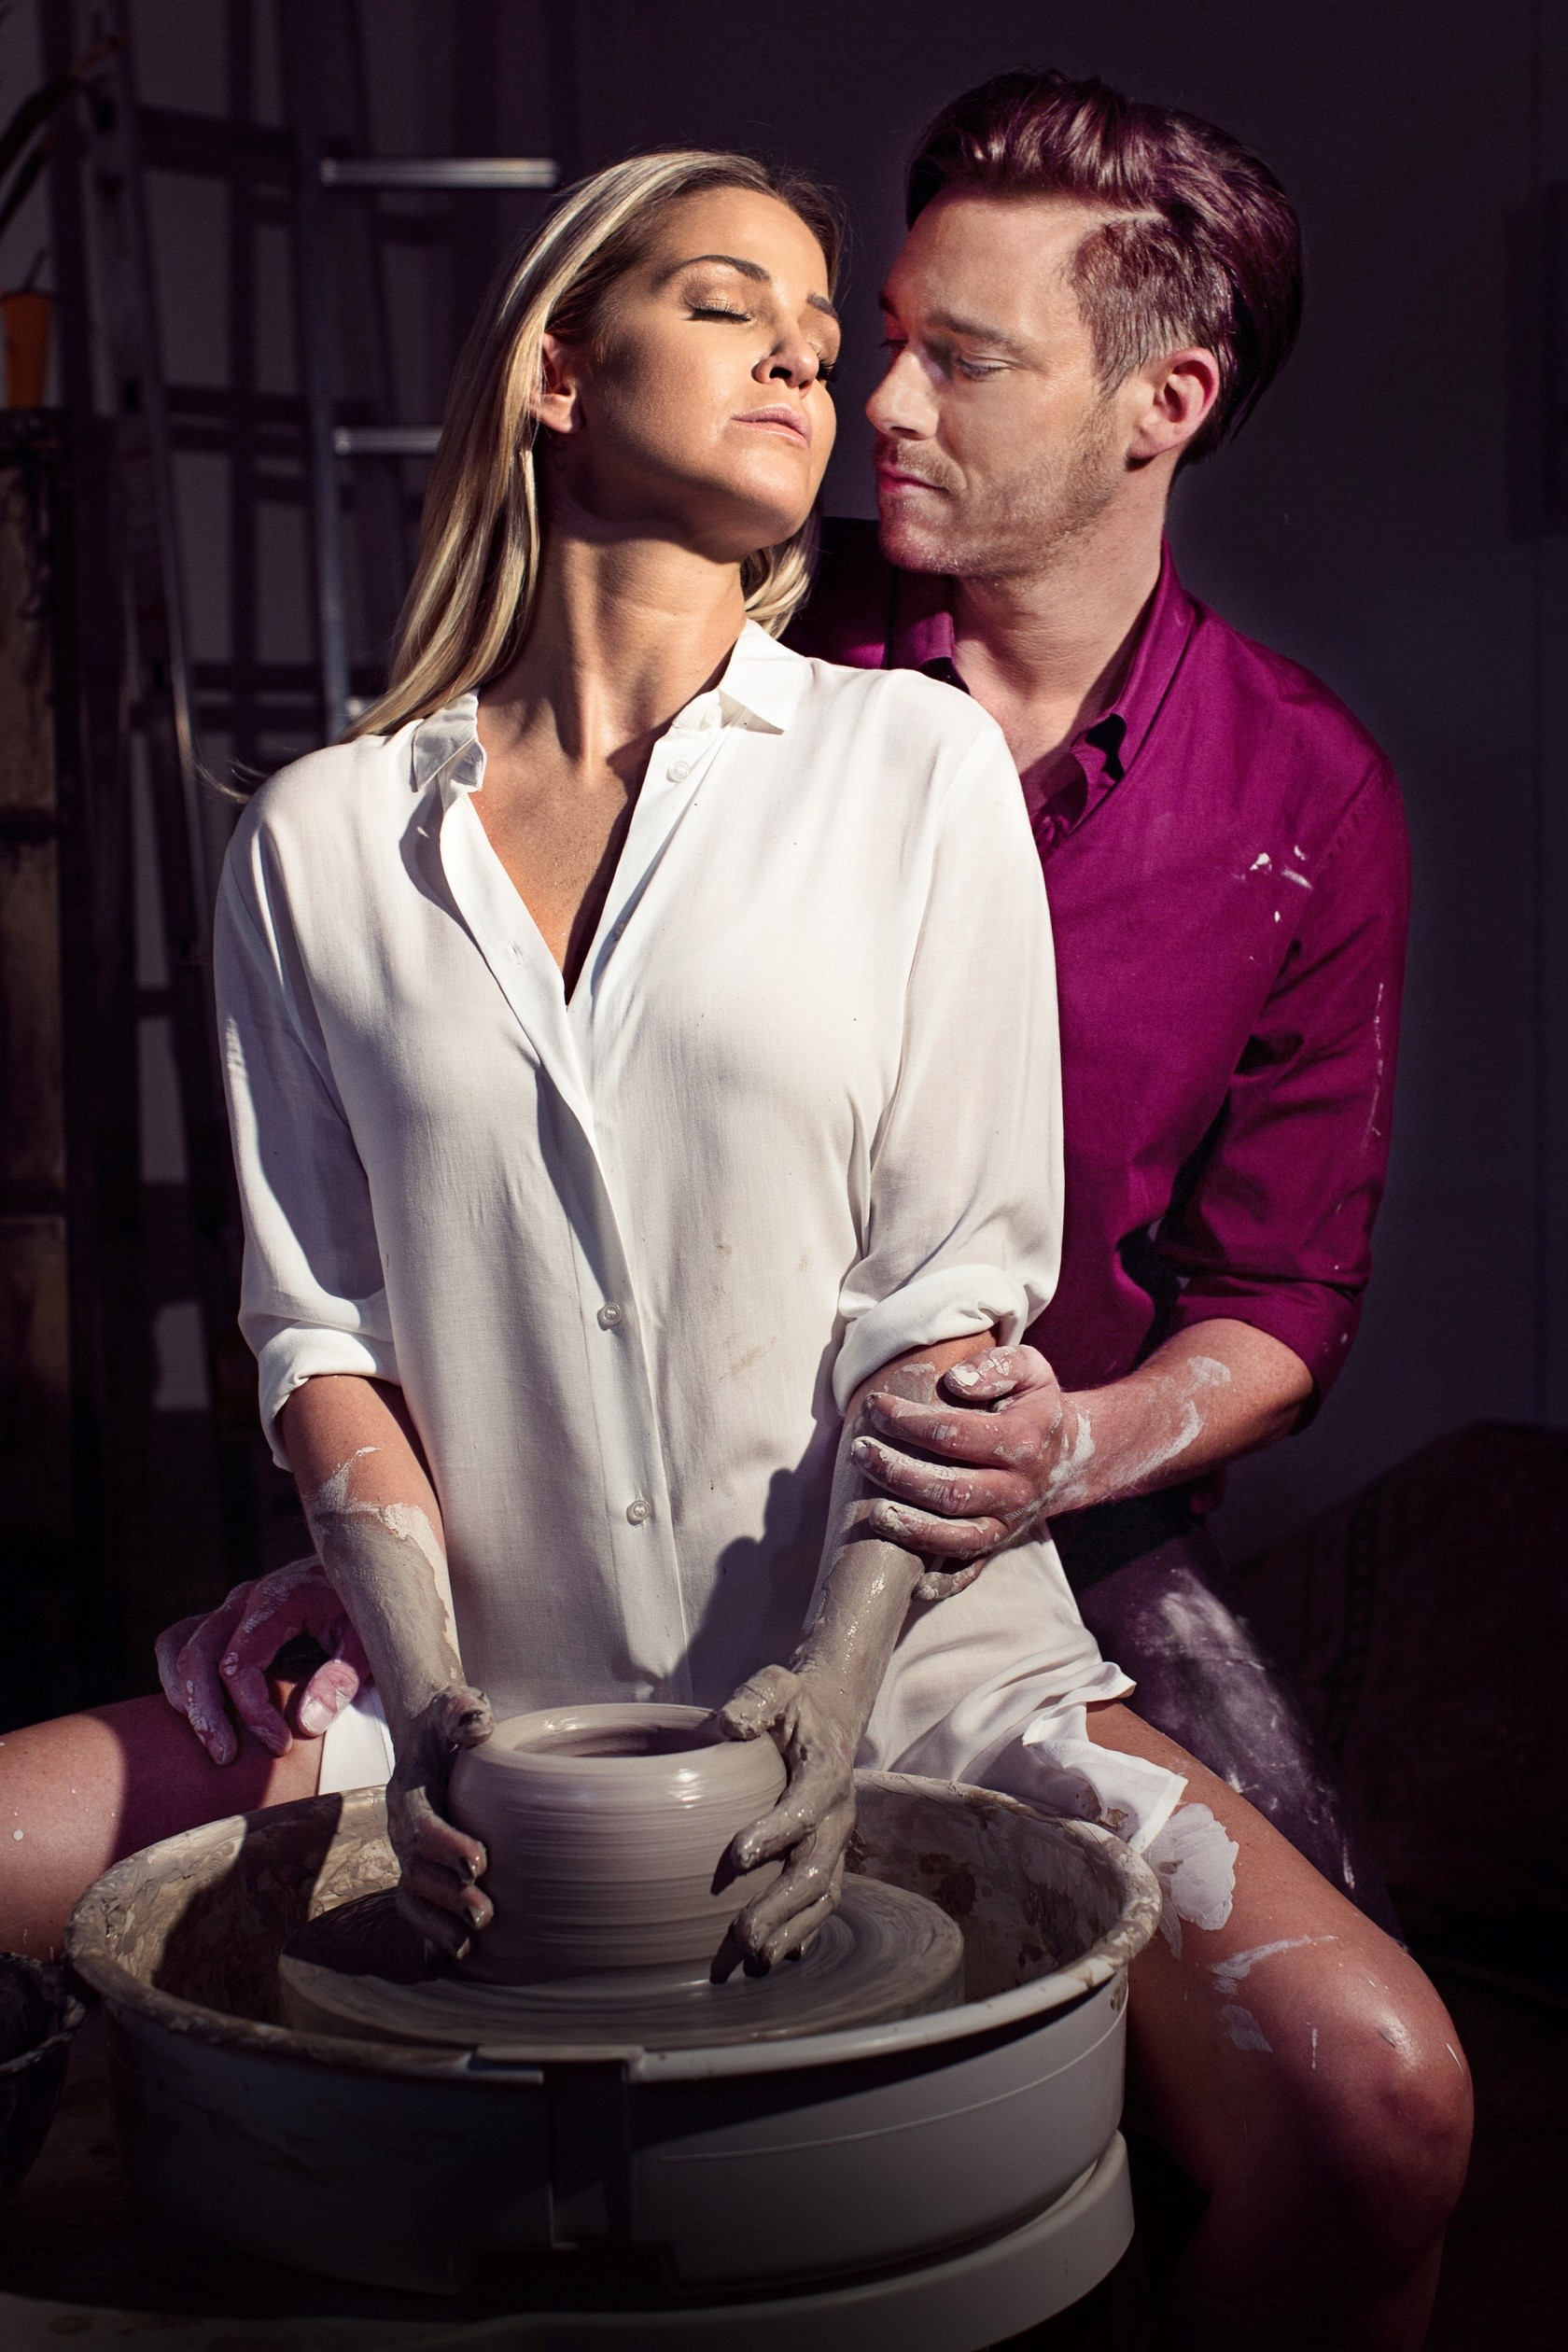 Sarah Harding and Andy Moss will star as Molly and Sam at Birmingham's New Alexandra Theatre's production of Ghost The Musical. Photo: Ambassador Theatre Group